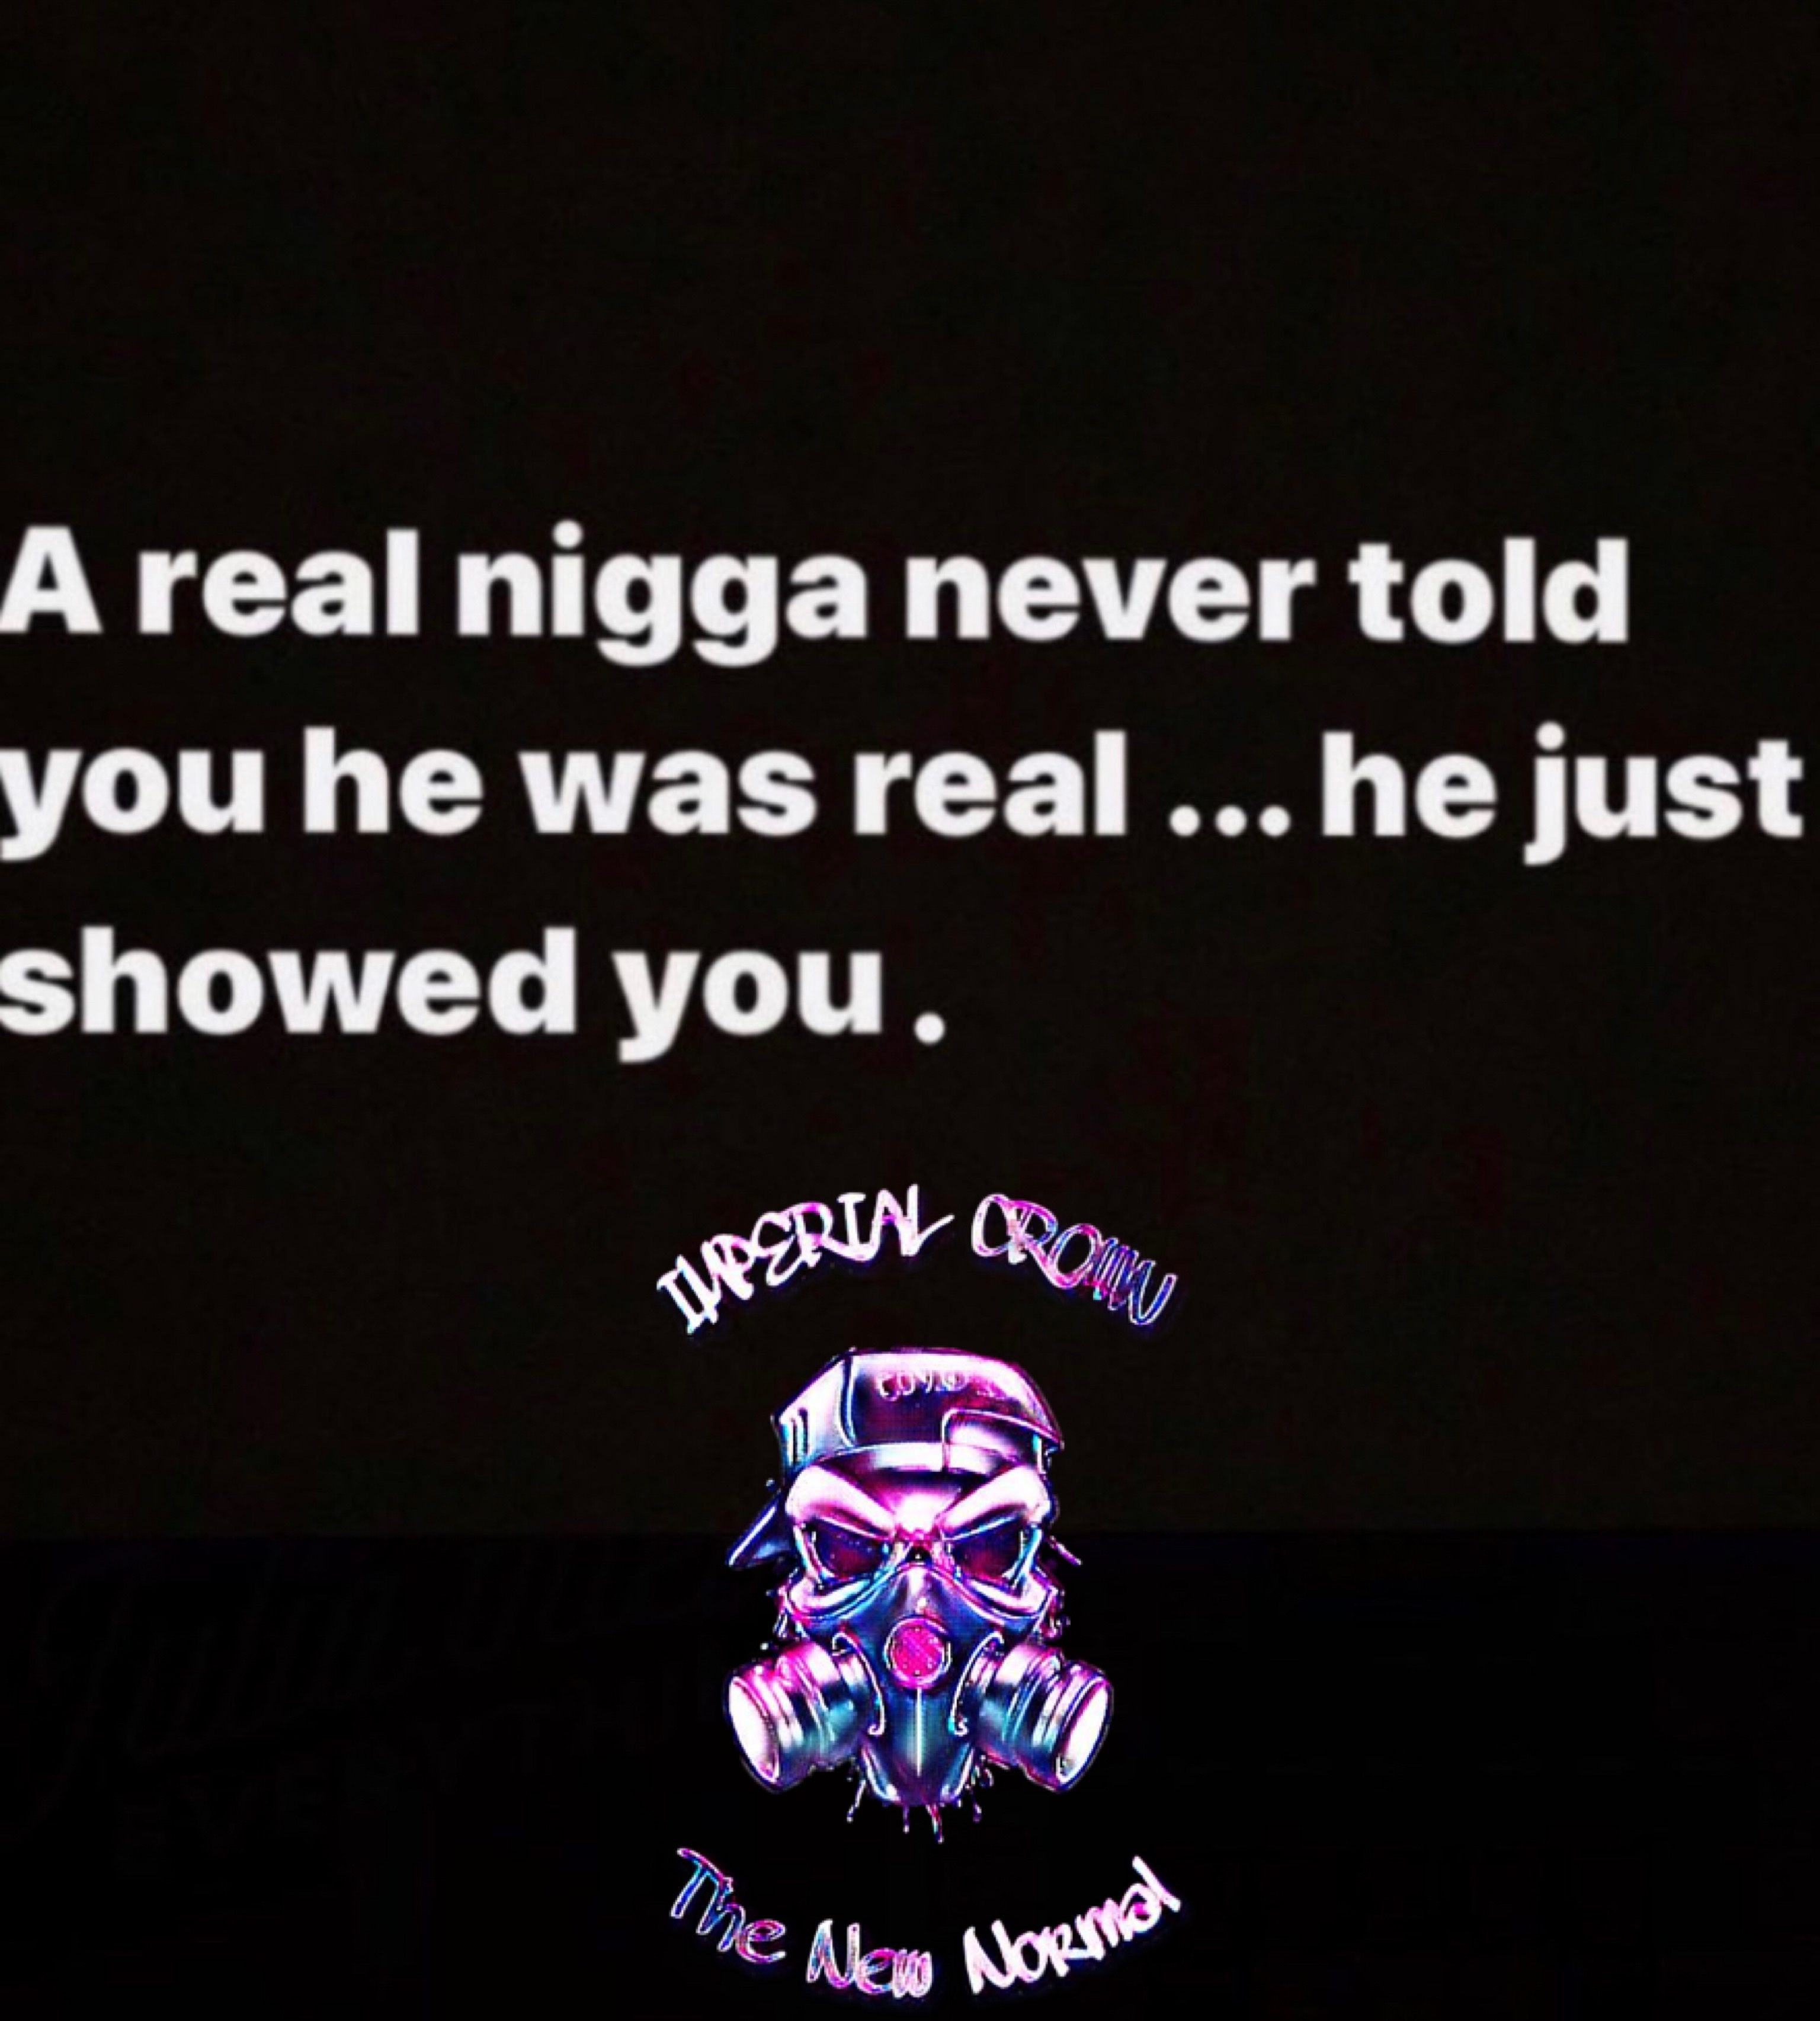 A real nigga never told you he was real he just showed you